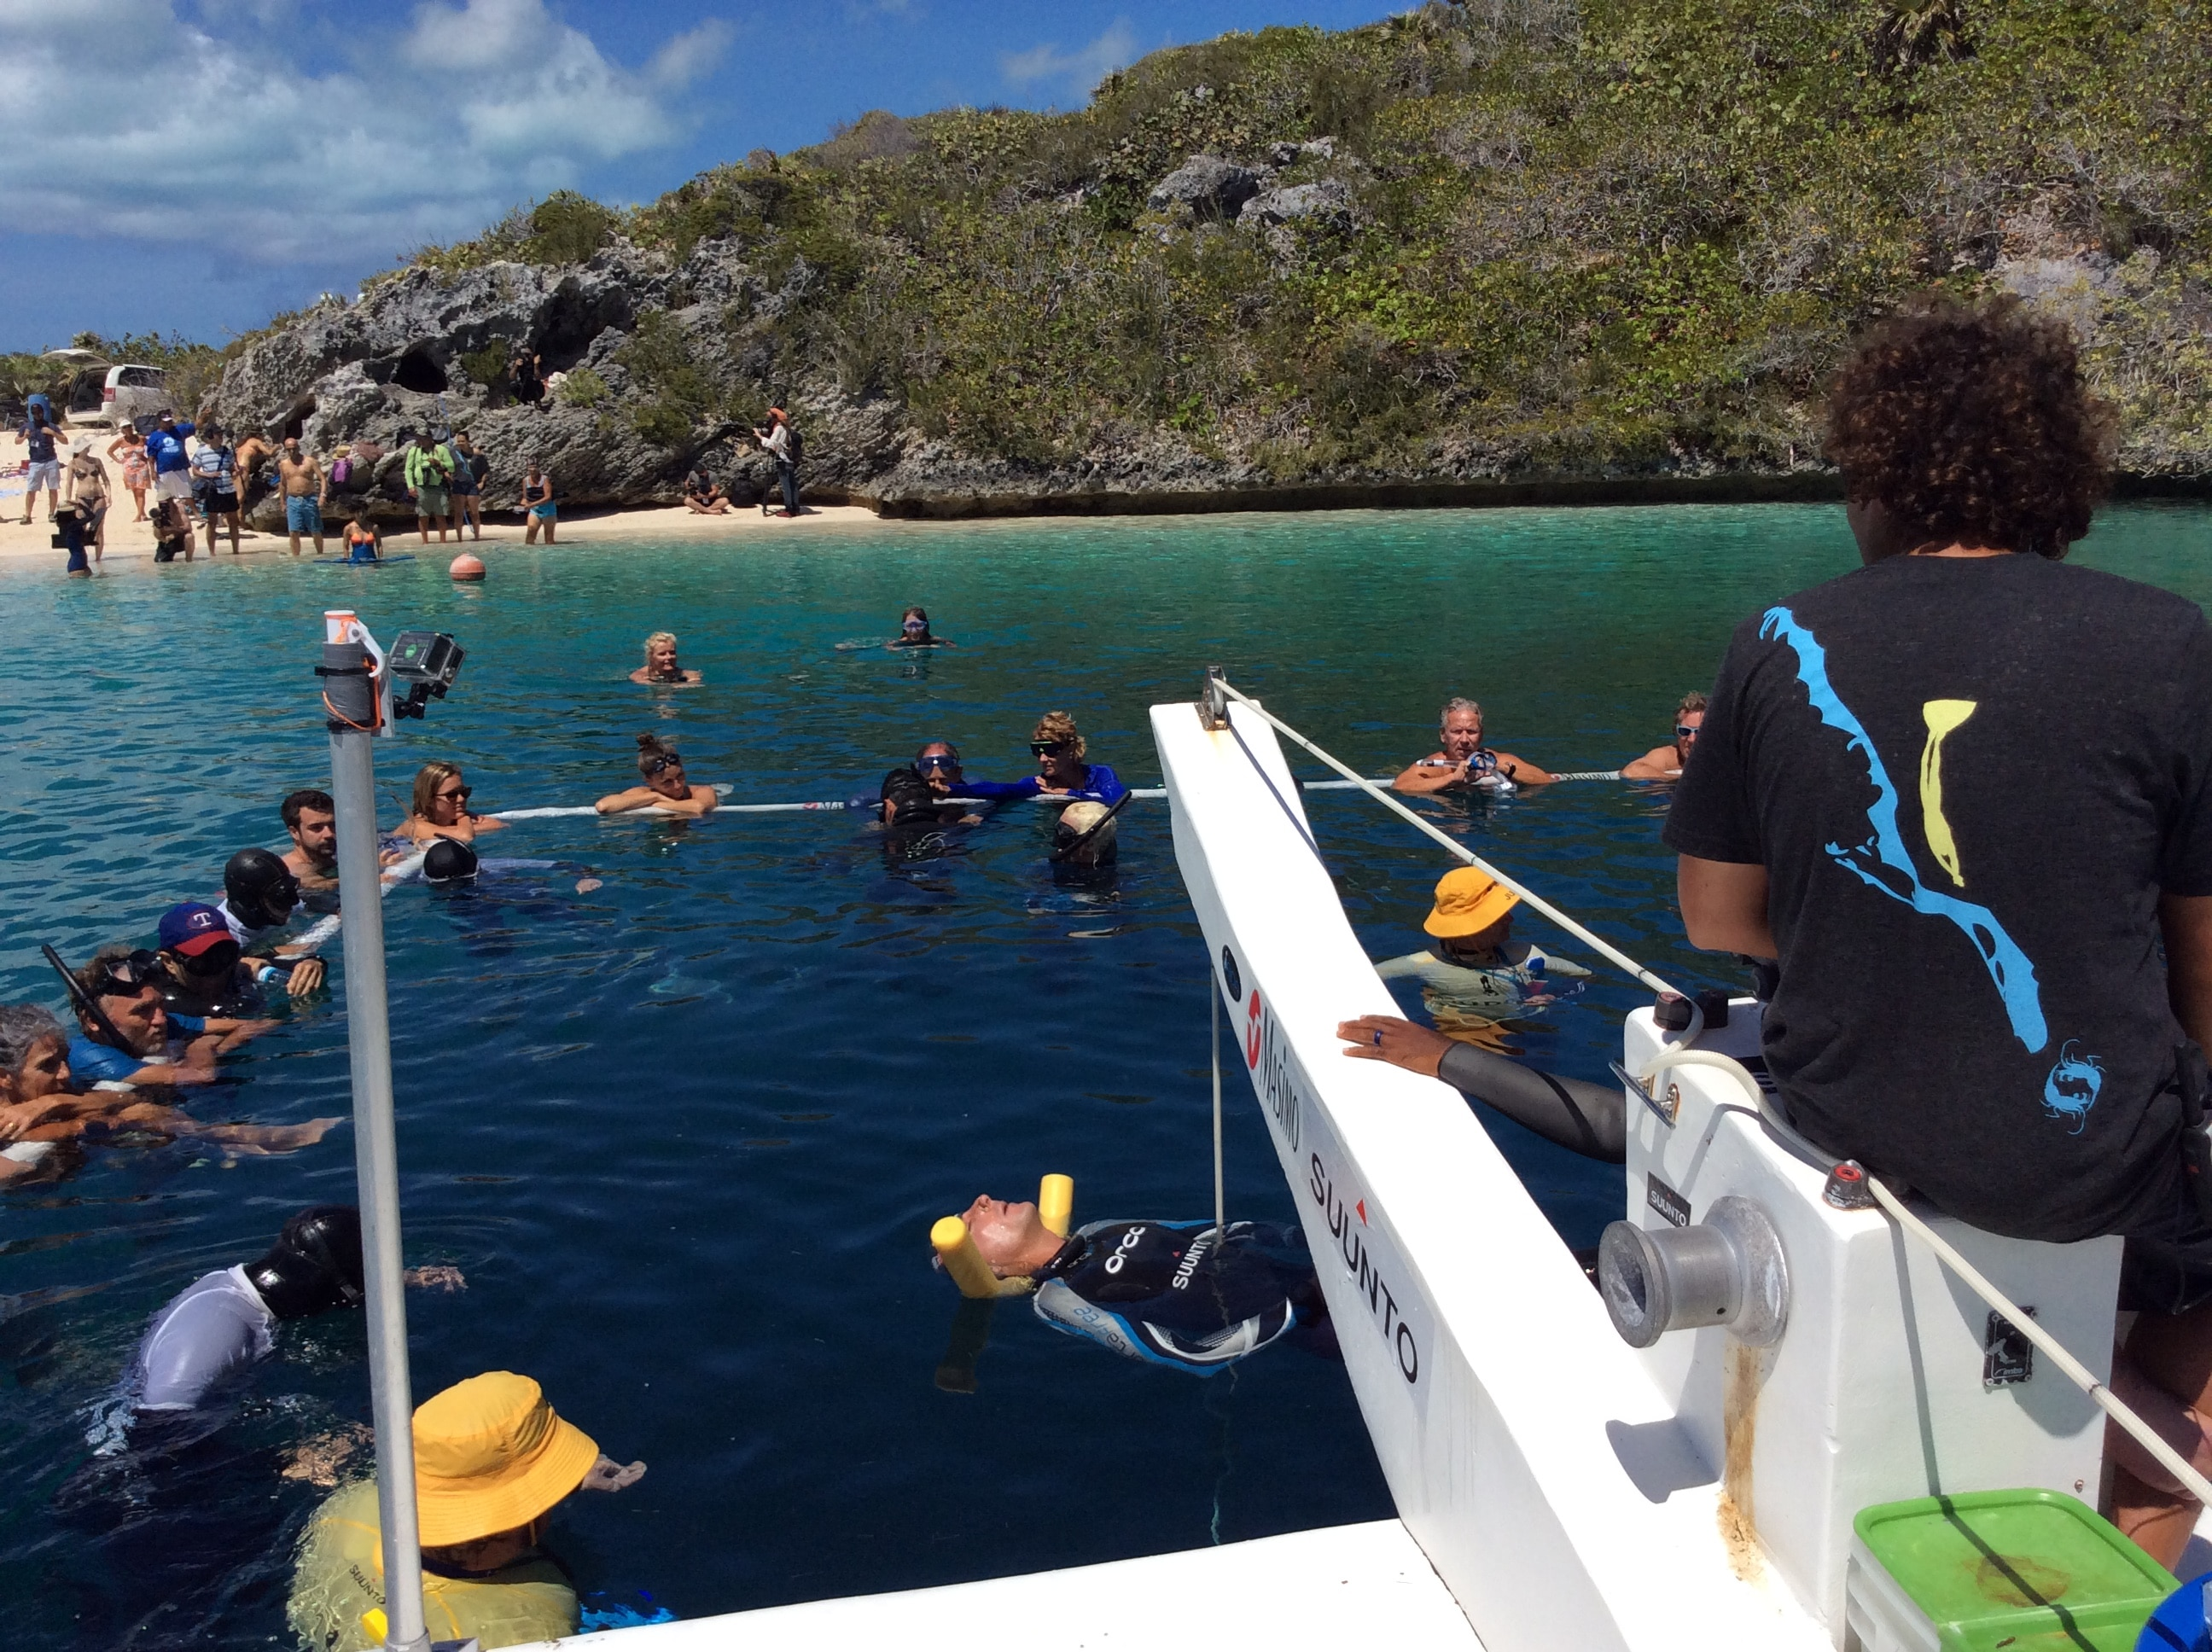 the platform scene before the dive (photo by Francesca Koe)